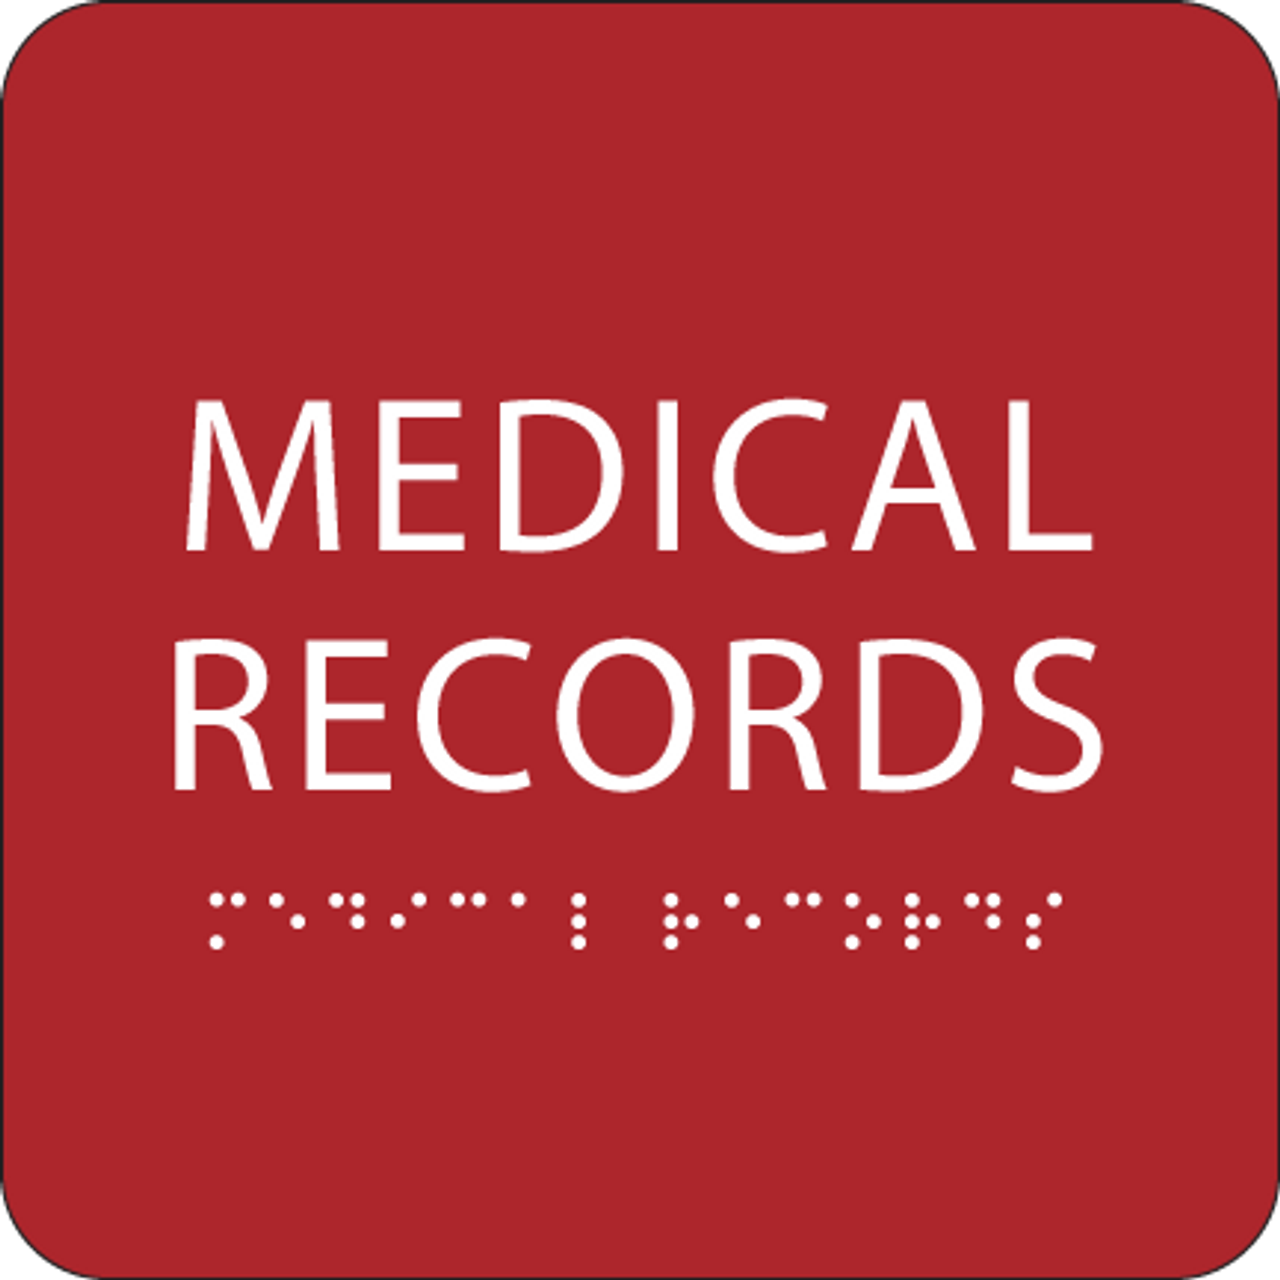 Red Medical Records ADA Sign